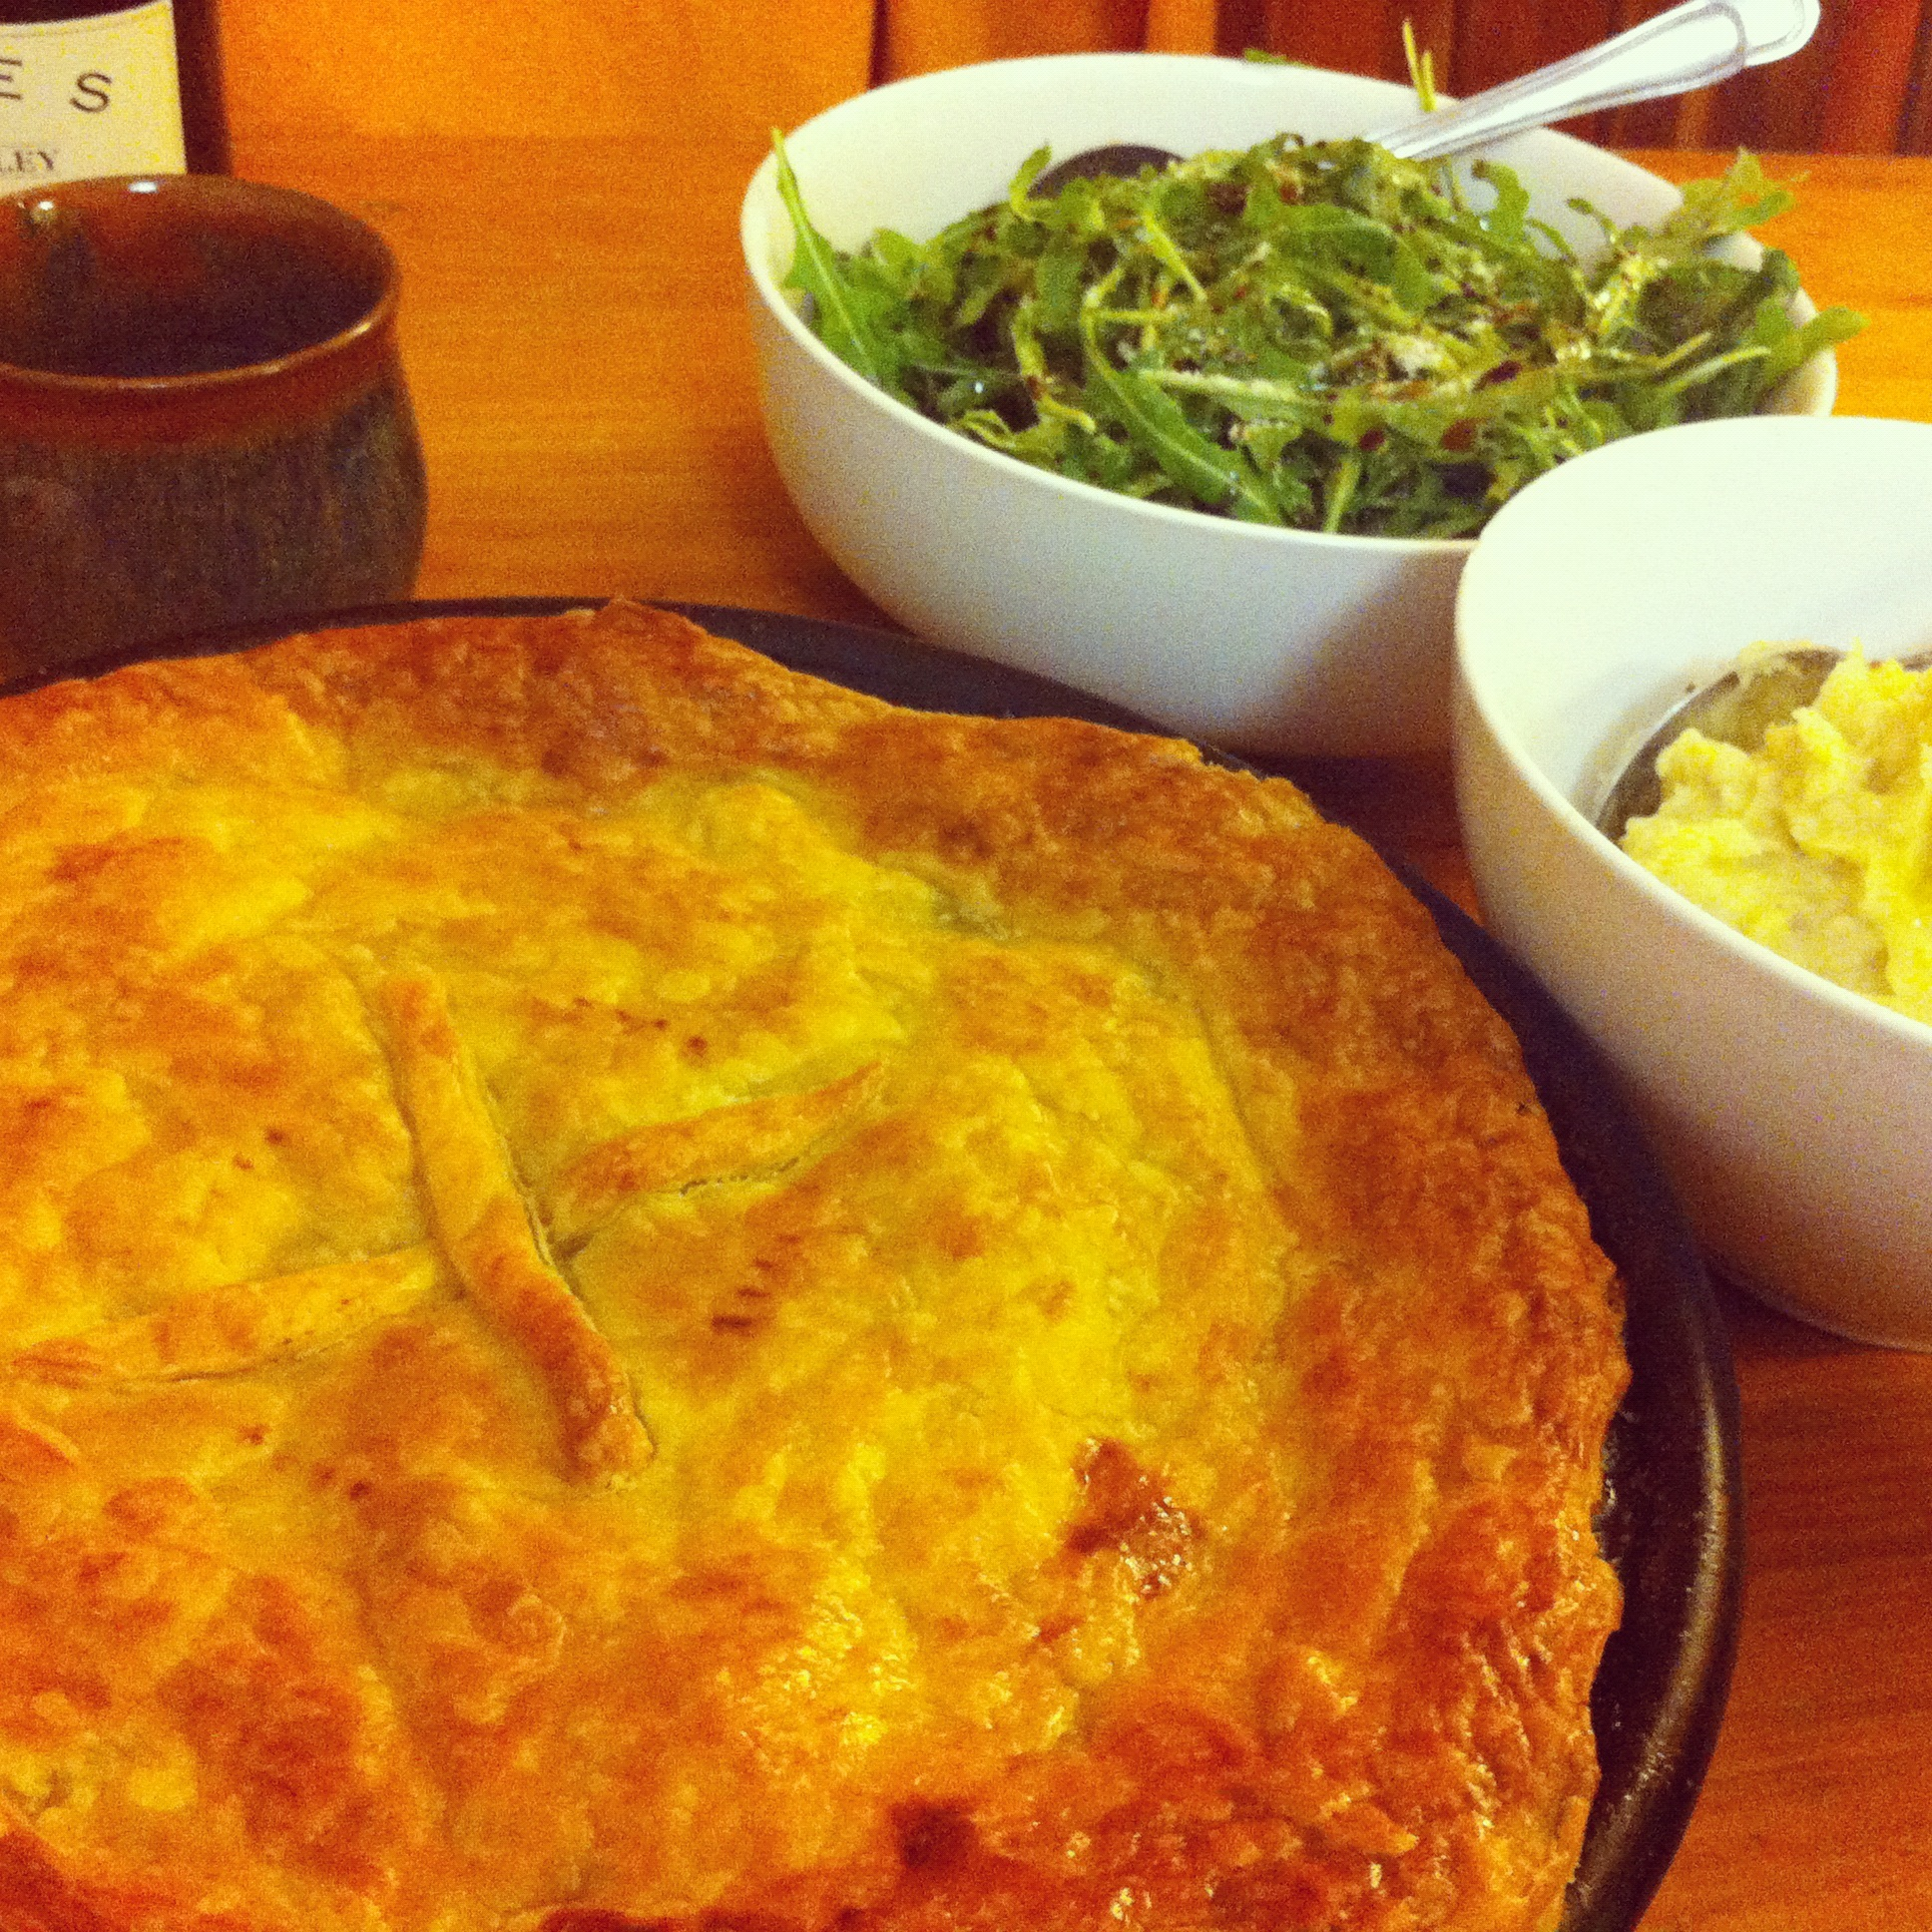 Chicken And Leek Pie On The Table